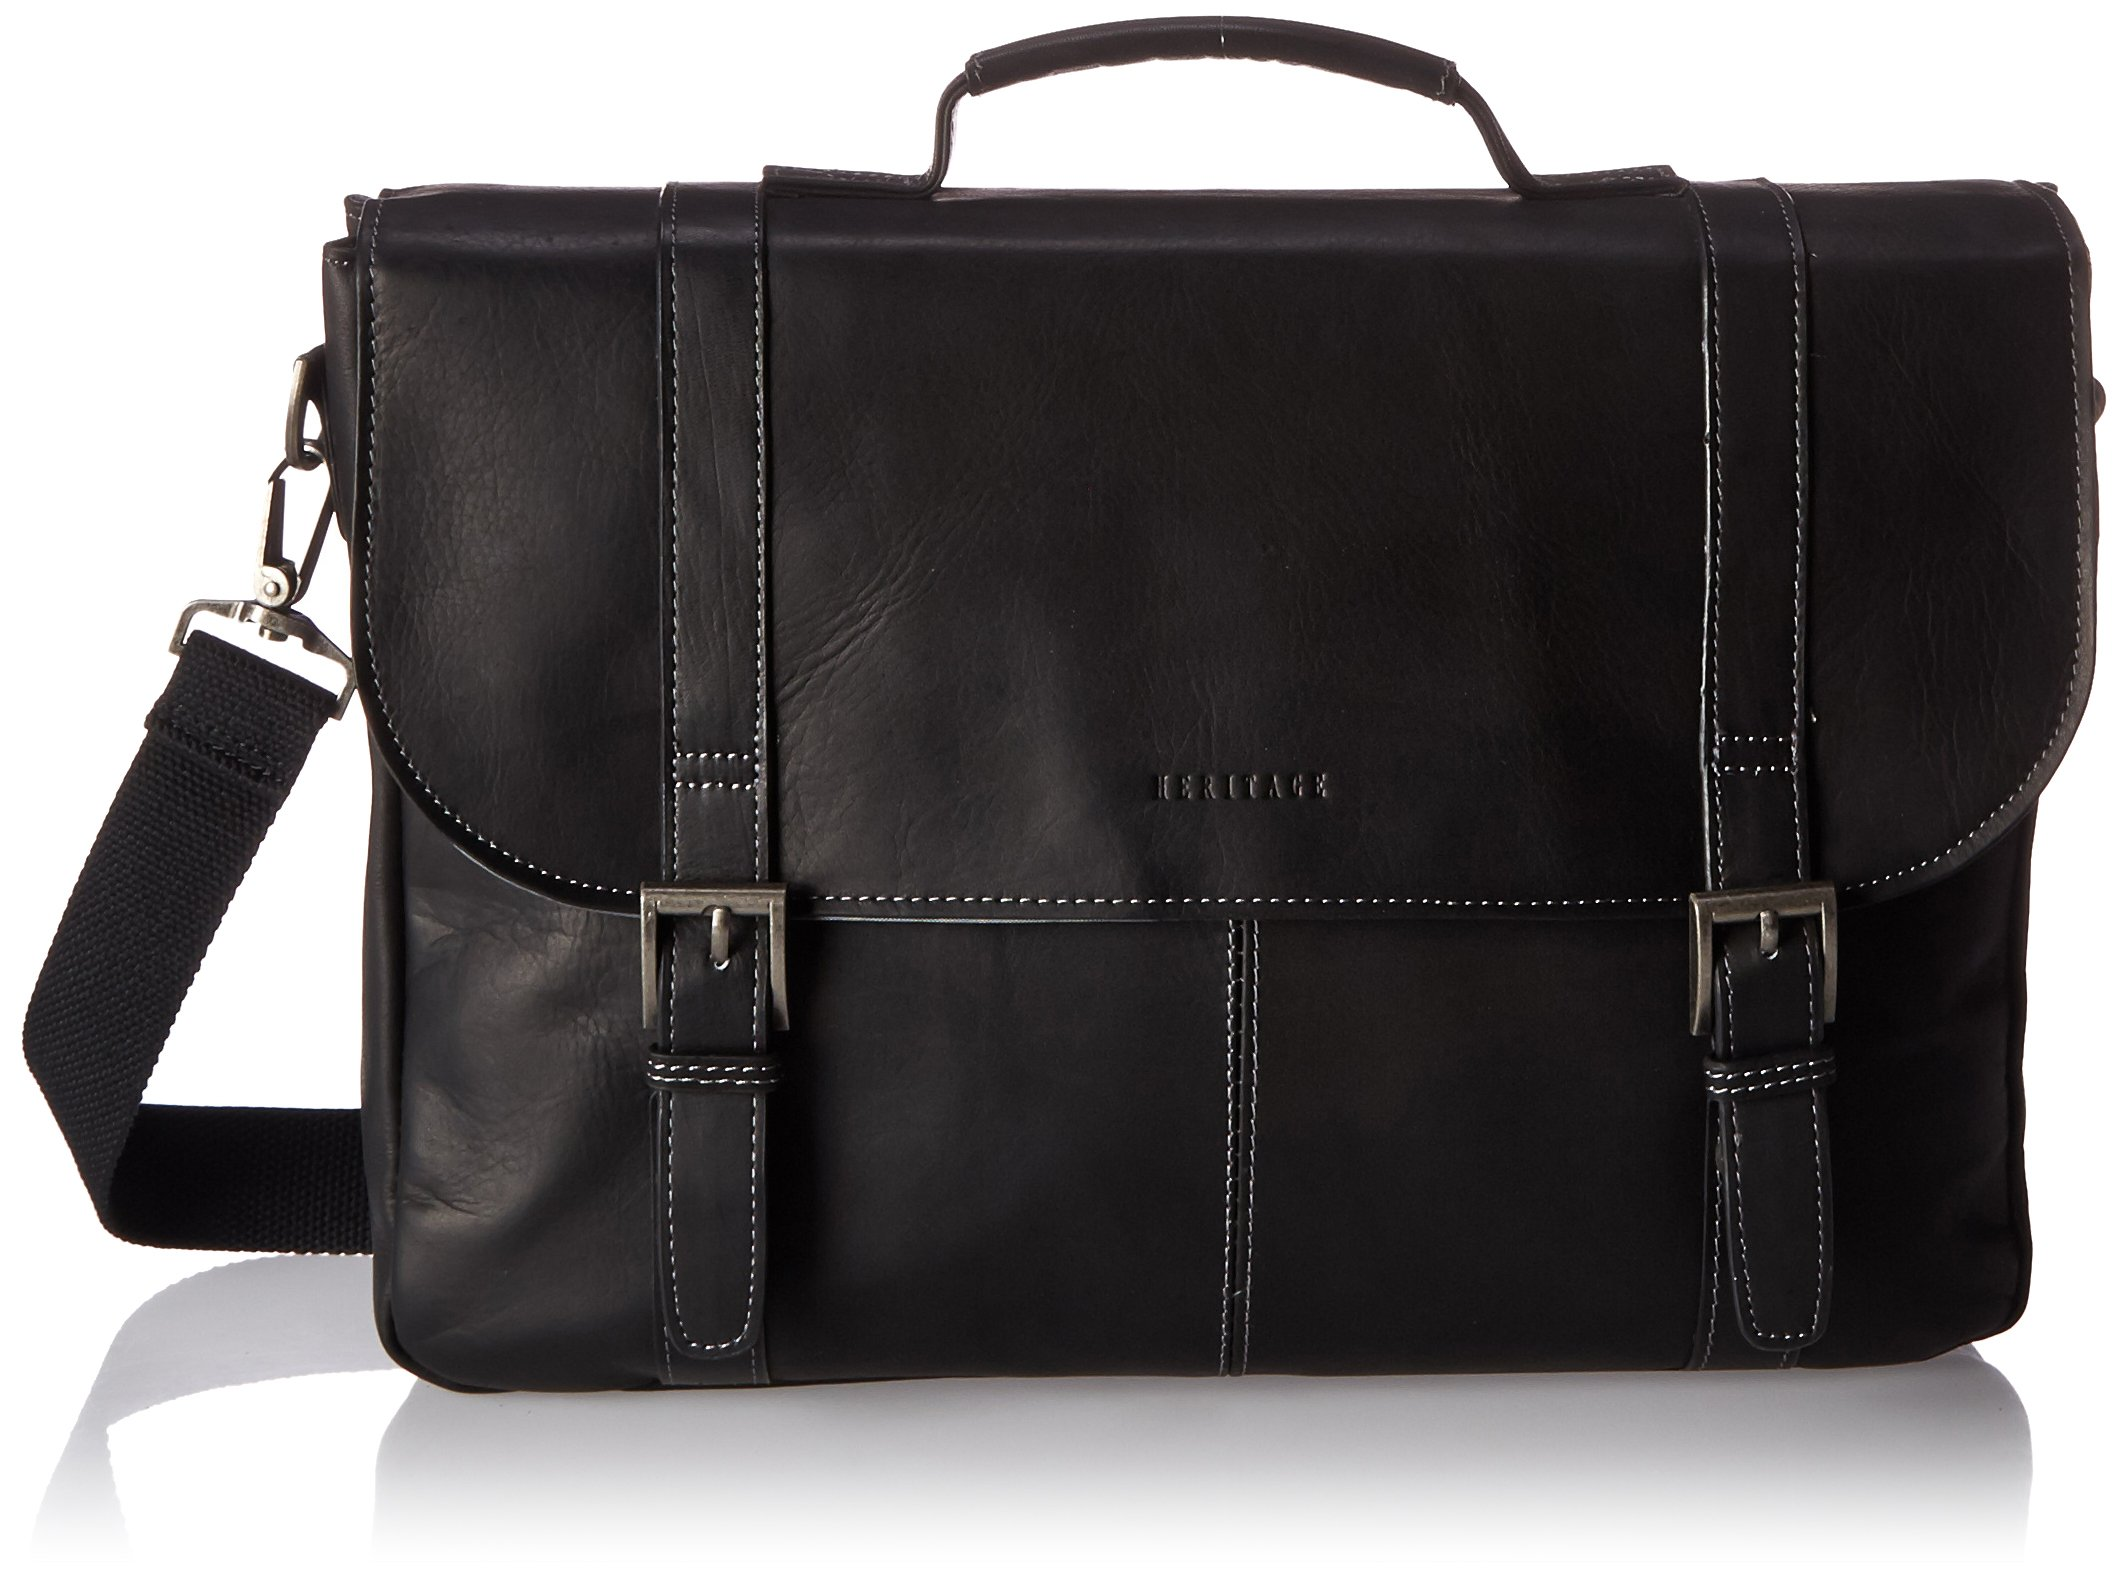 Heritage Double Gusset Flapover Computer Case Holds Most 16 Inch Size Laptops, Black, One Size